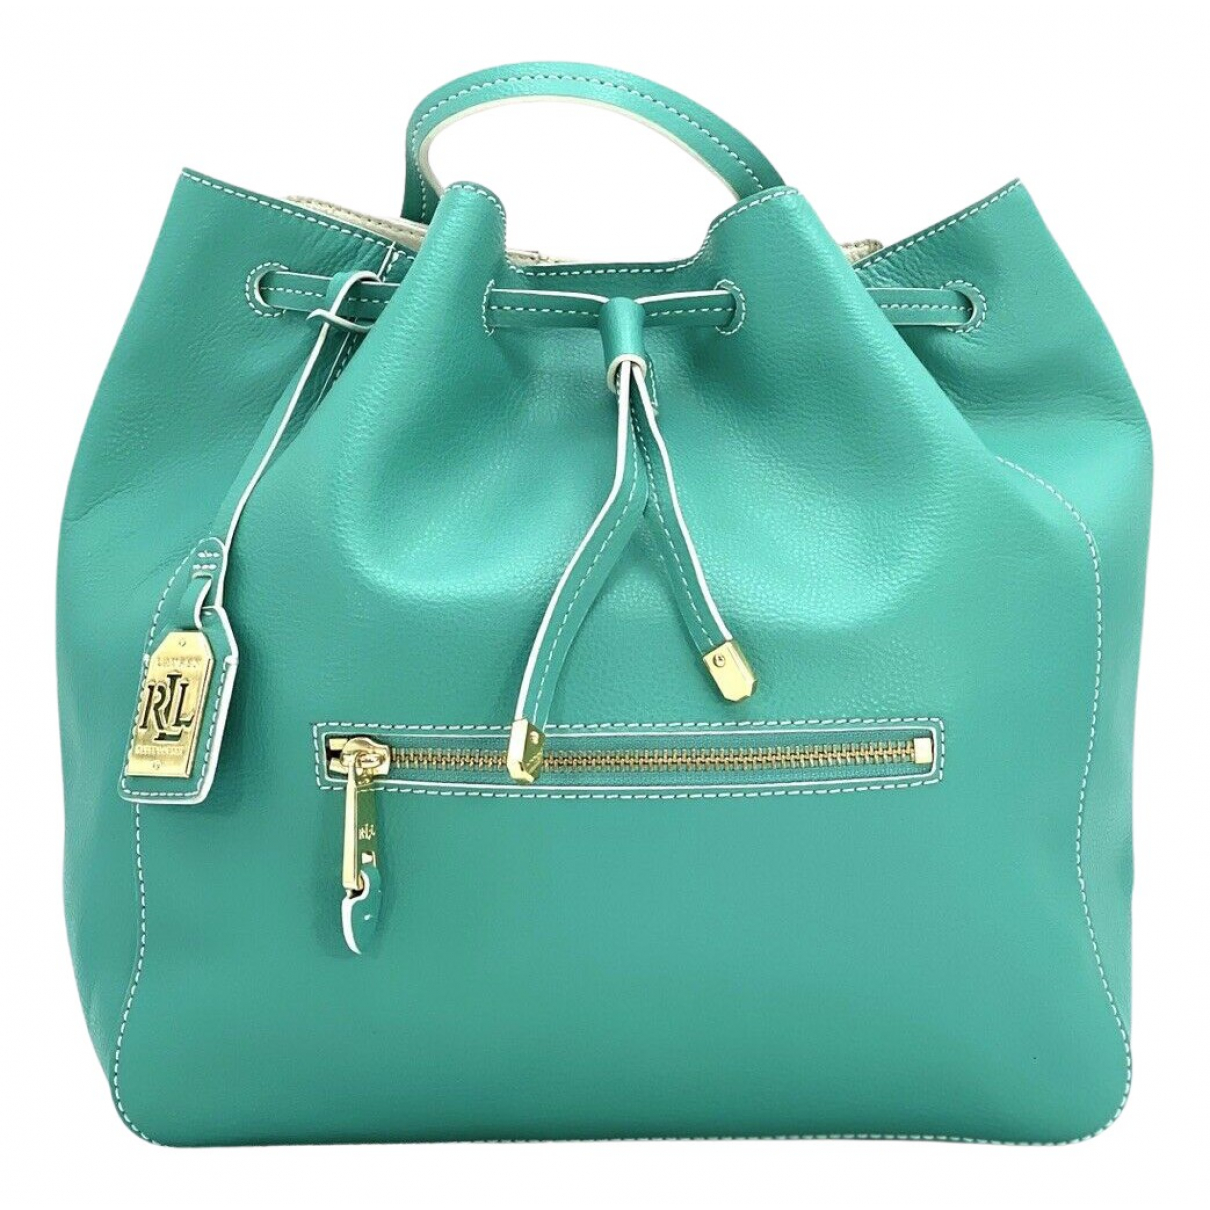 Polo Ralph Lauren N Turquoise Leather backpack for Women N